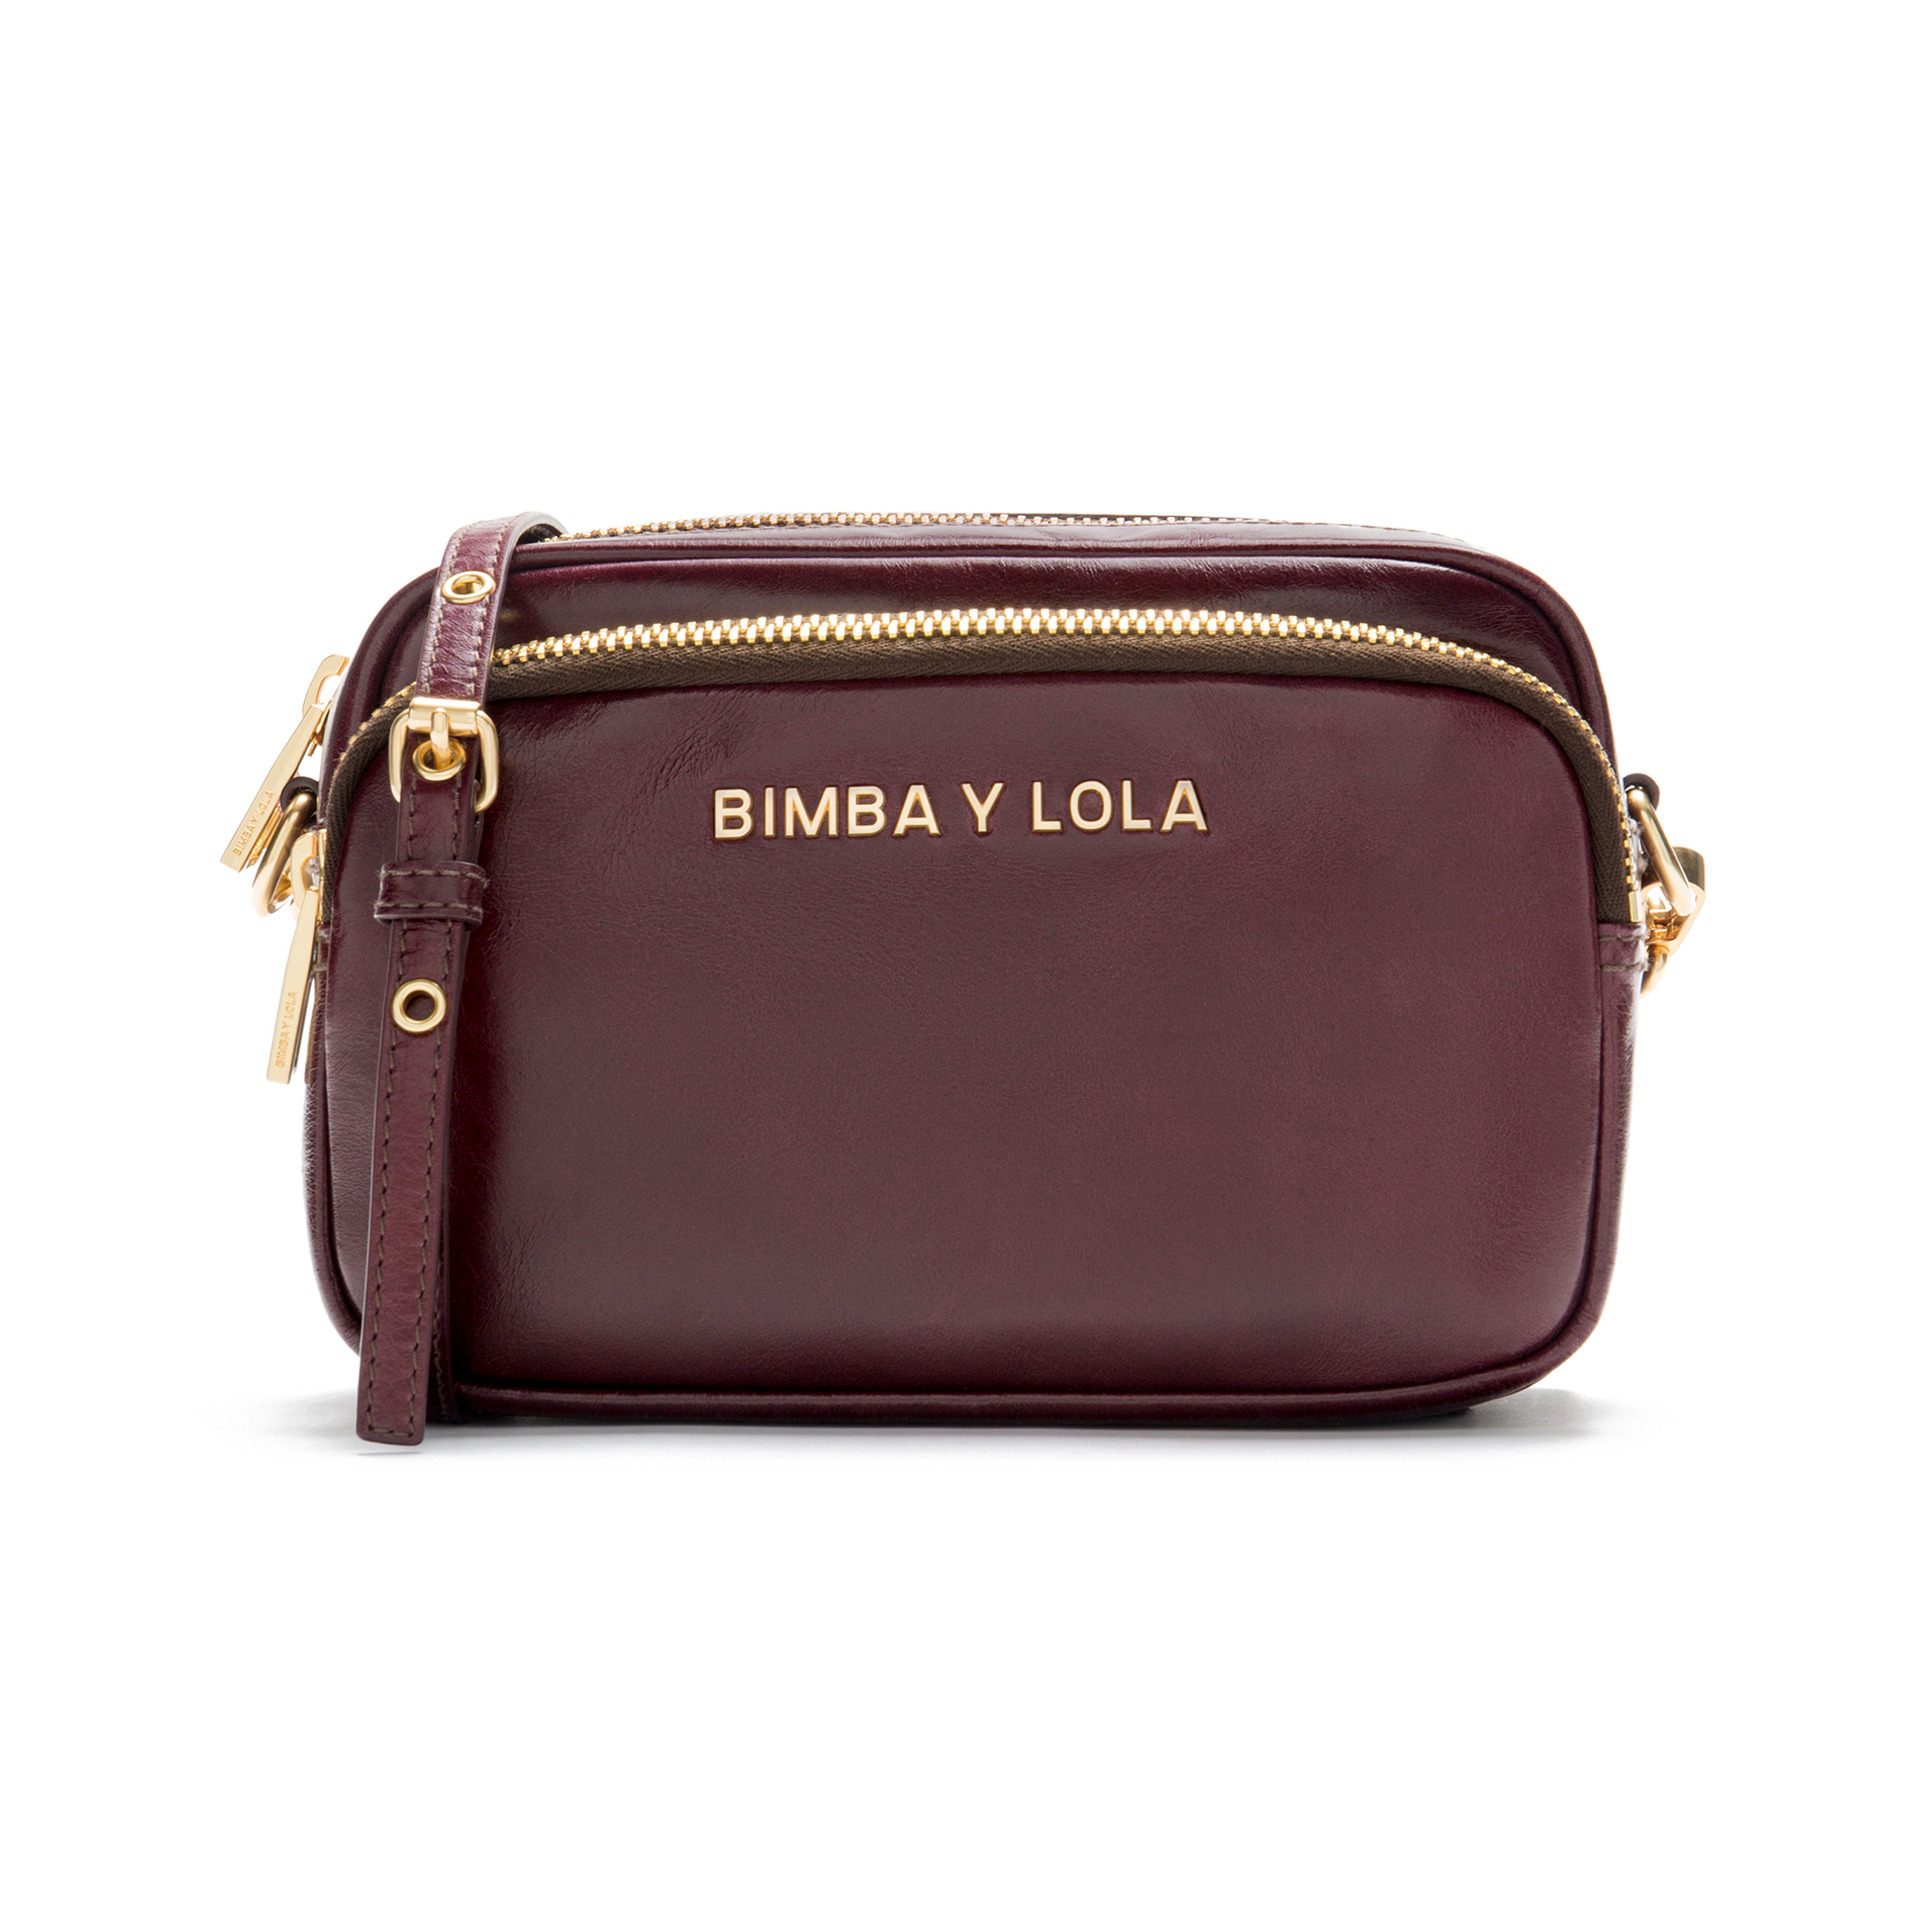 Bimba y Lola Outlet Days